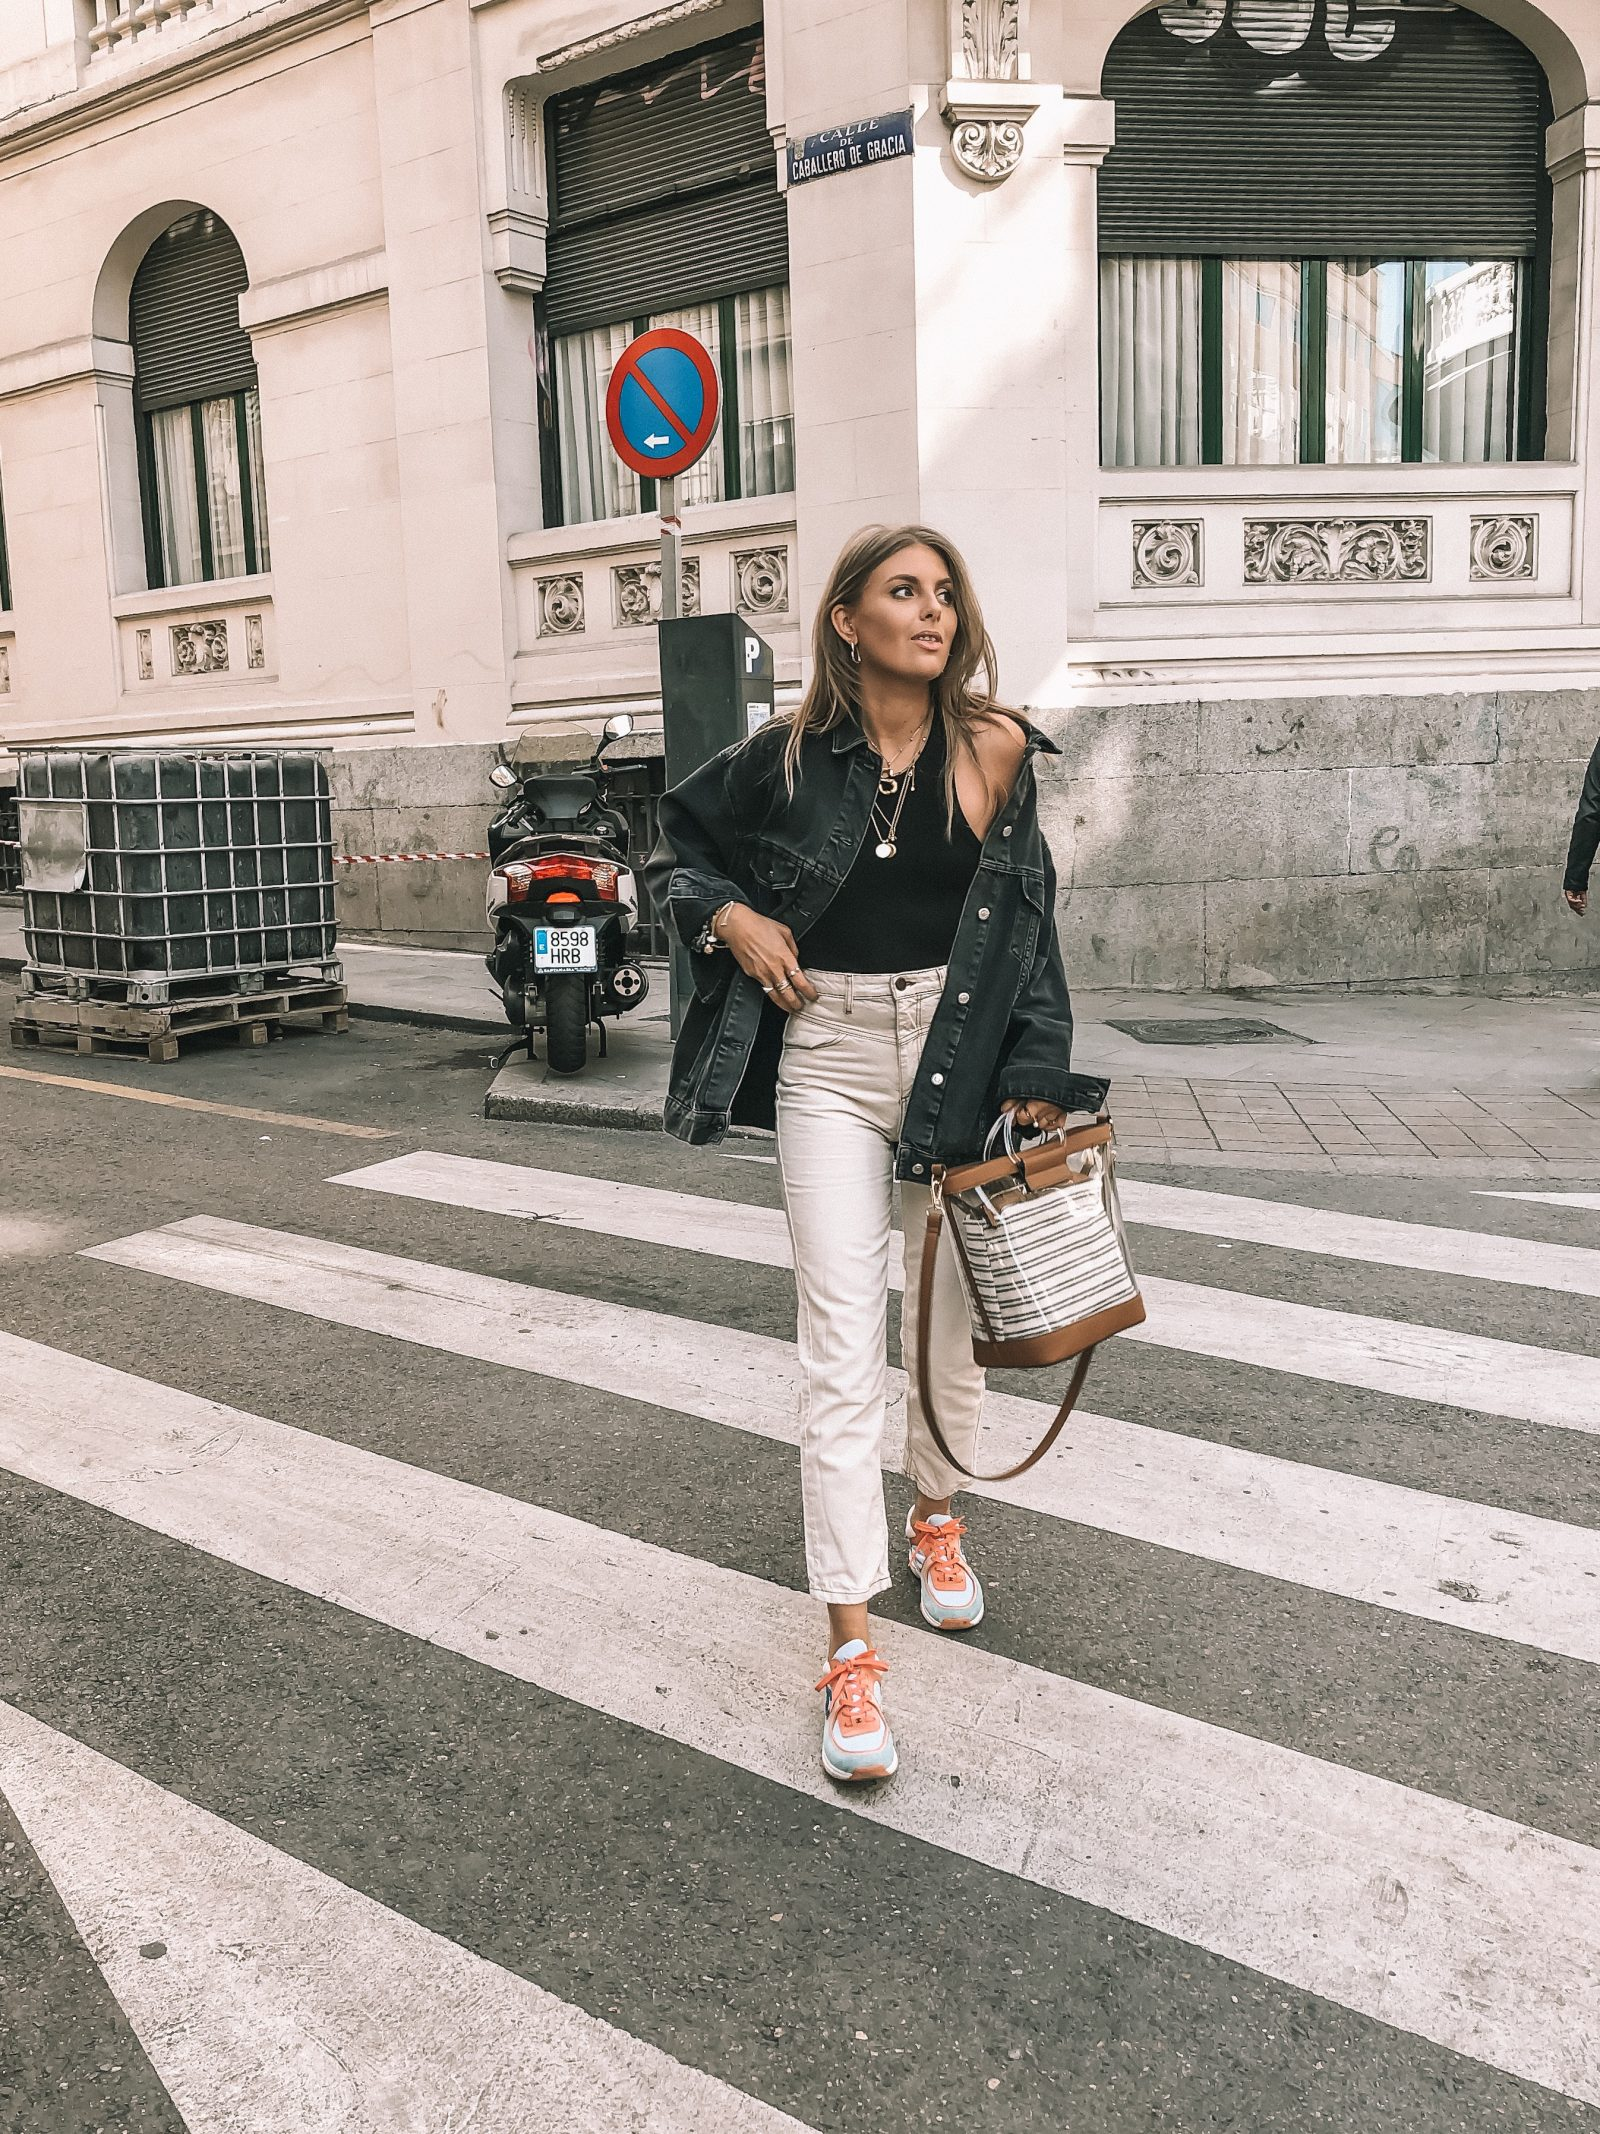 Madrid Outfit Diaries - Accessorize Clear Bag